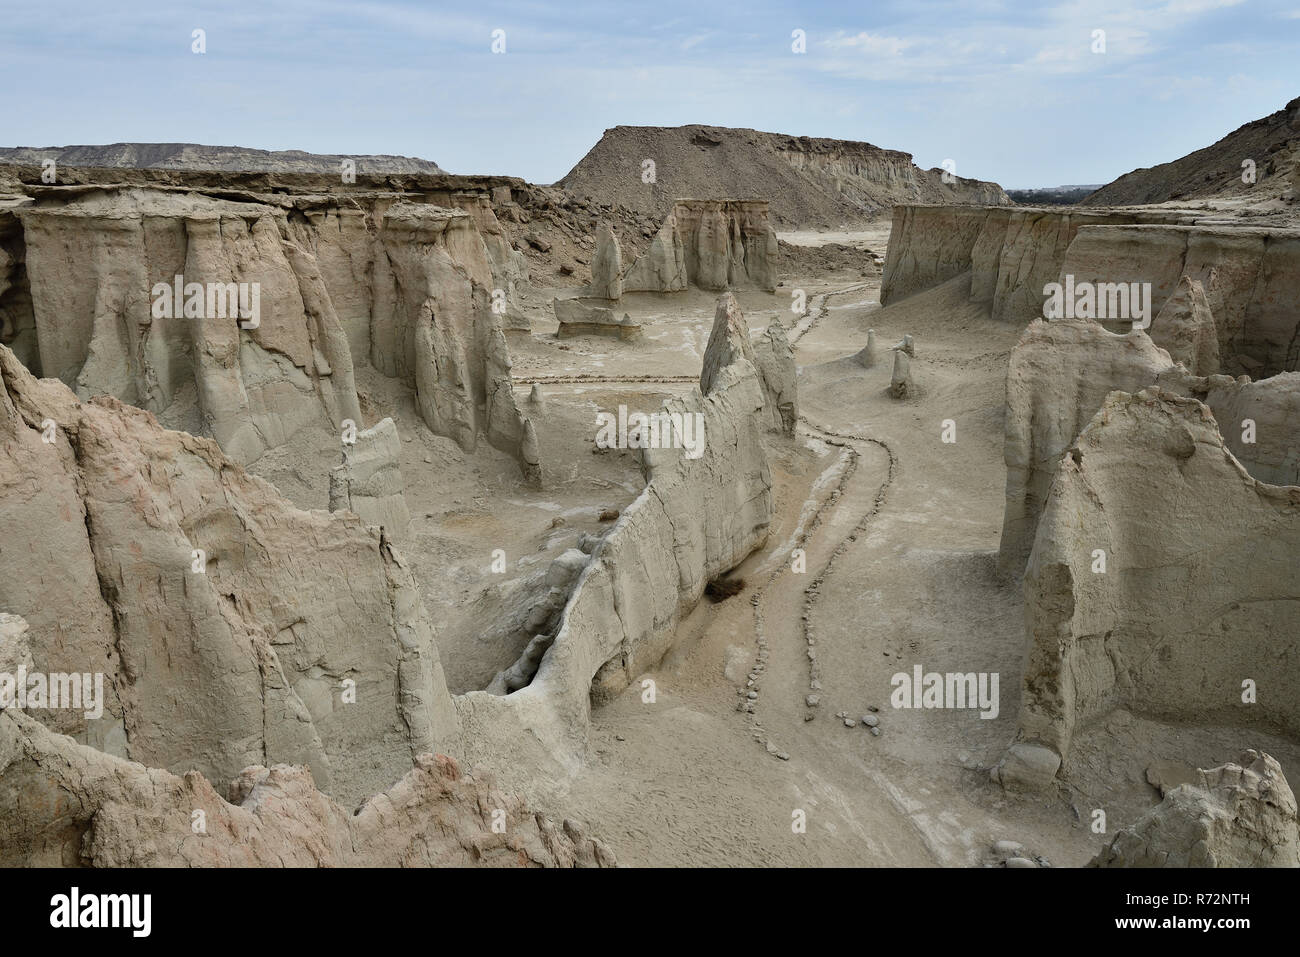 Wonderful rock formations created by the nature on the Stars Valley on the Qeshm island, Iran - Stock Image